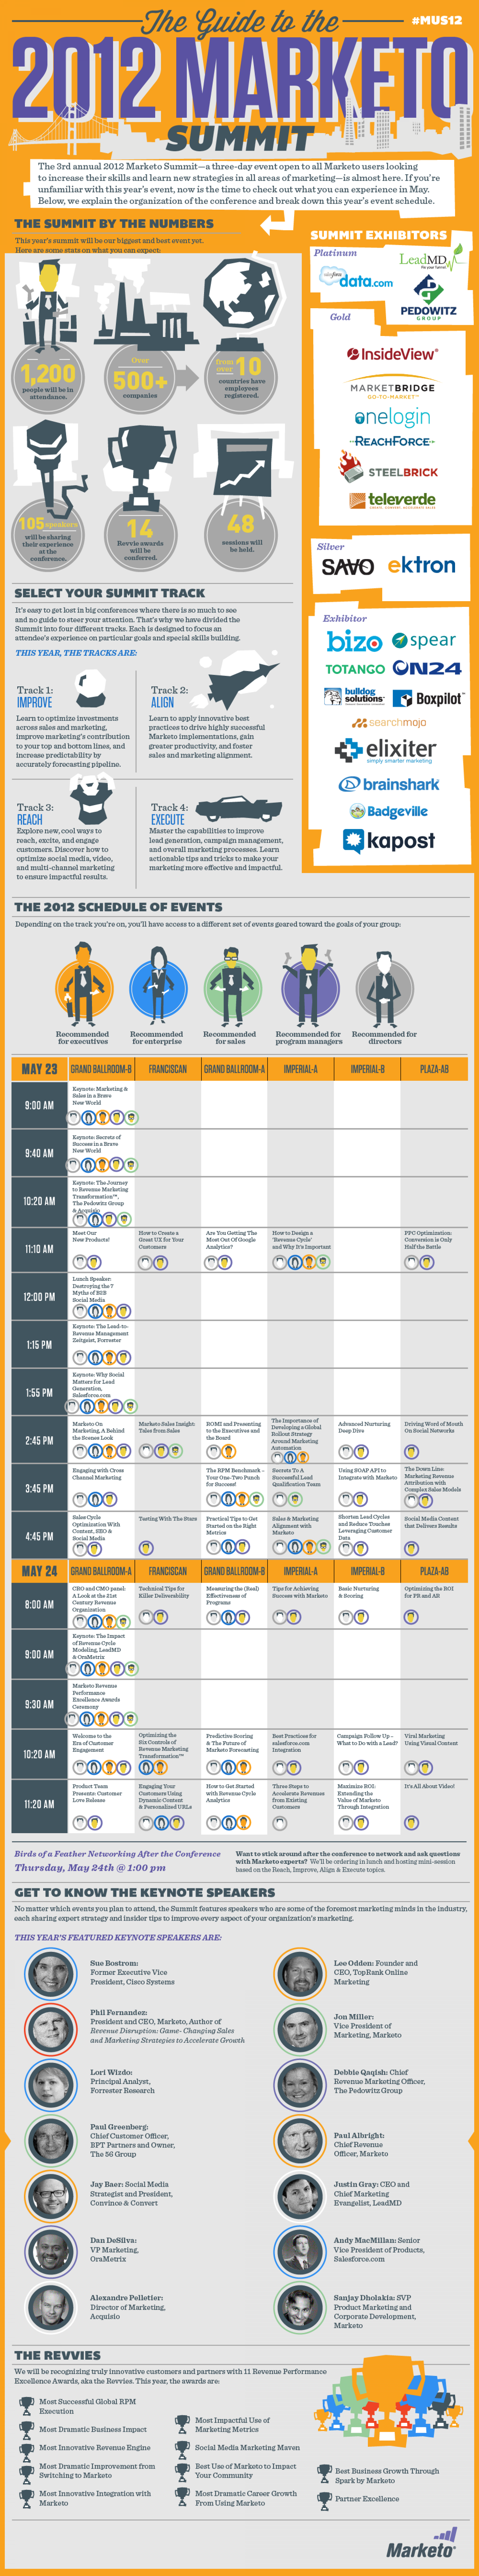 The Guide to the 2012 Marketo User Summit Infographic